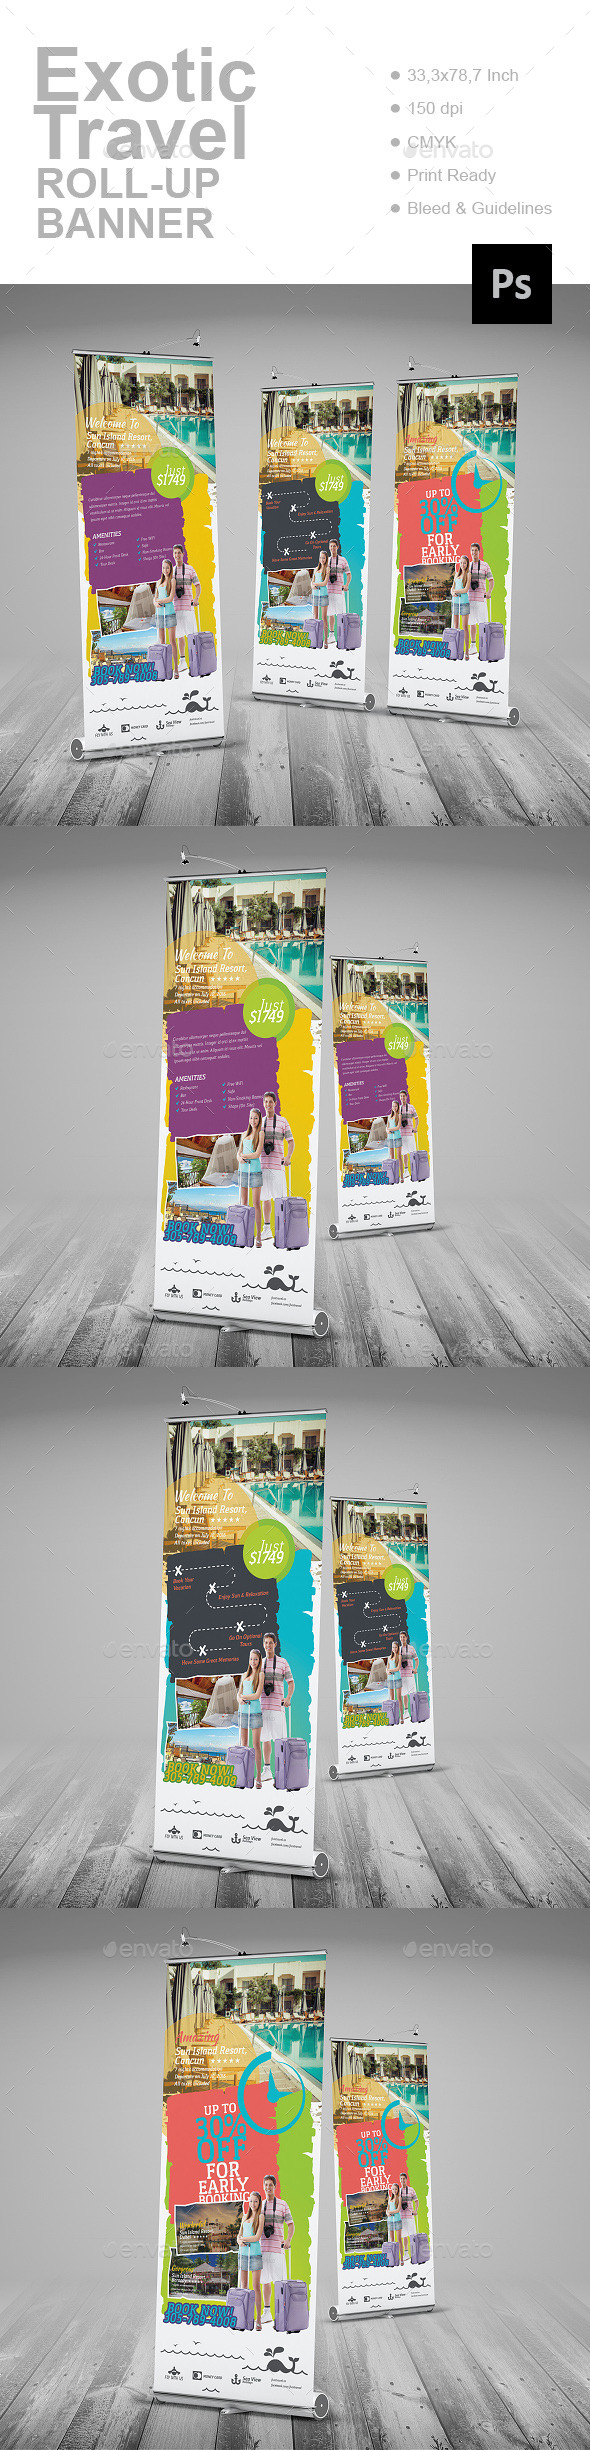 Exotic Travel Roll-Up Banner